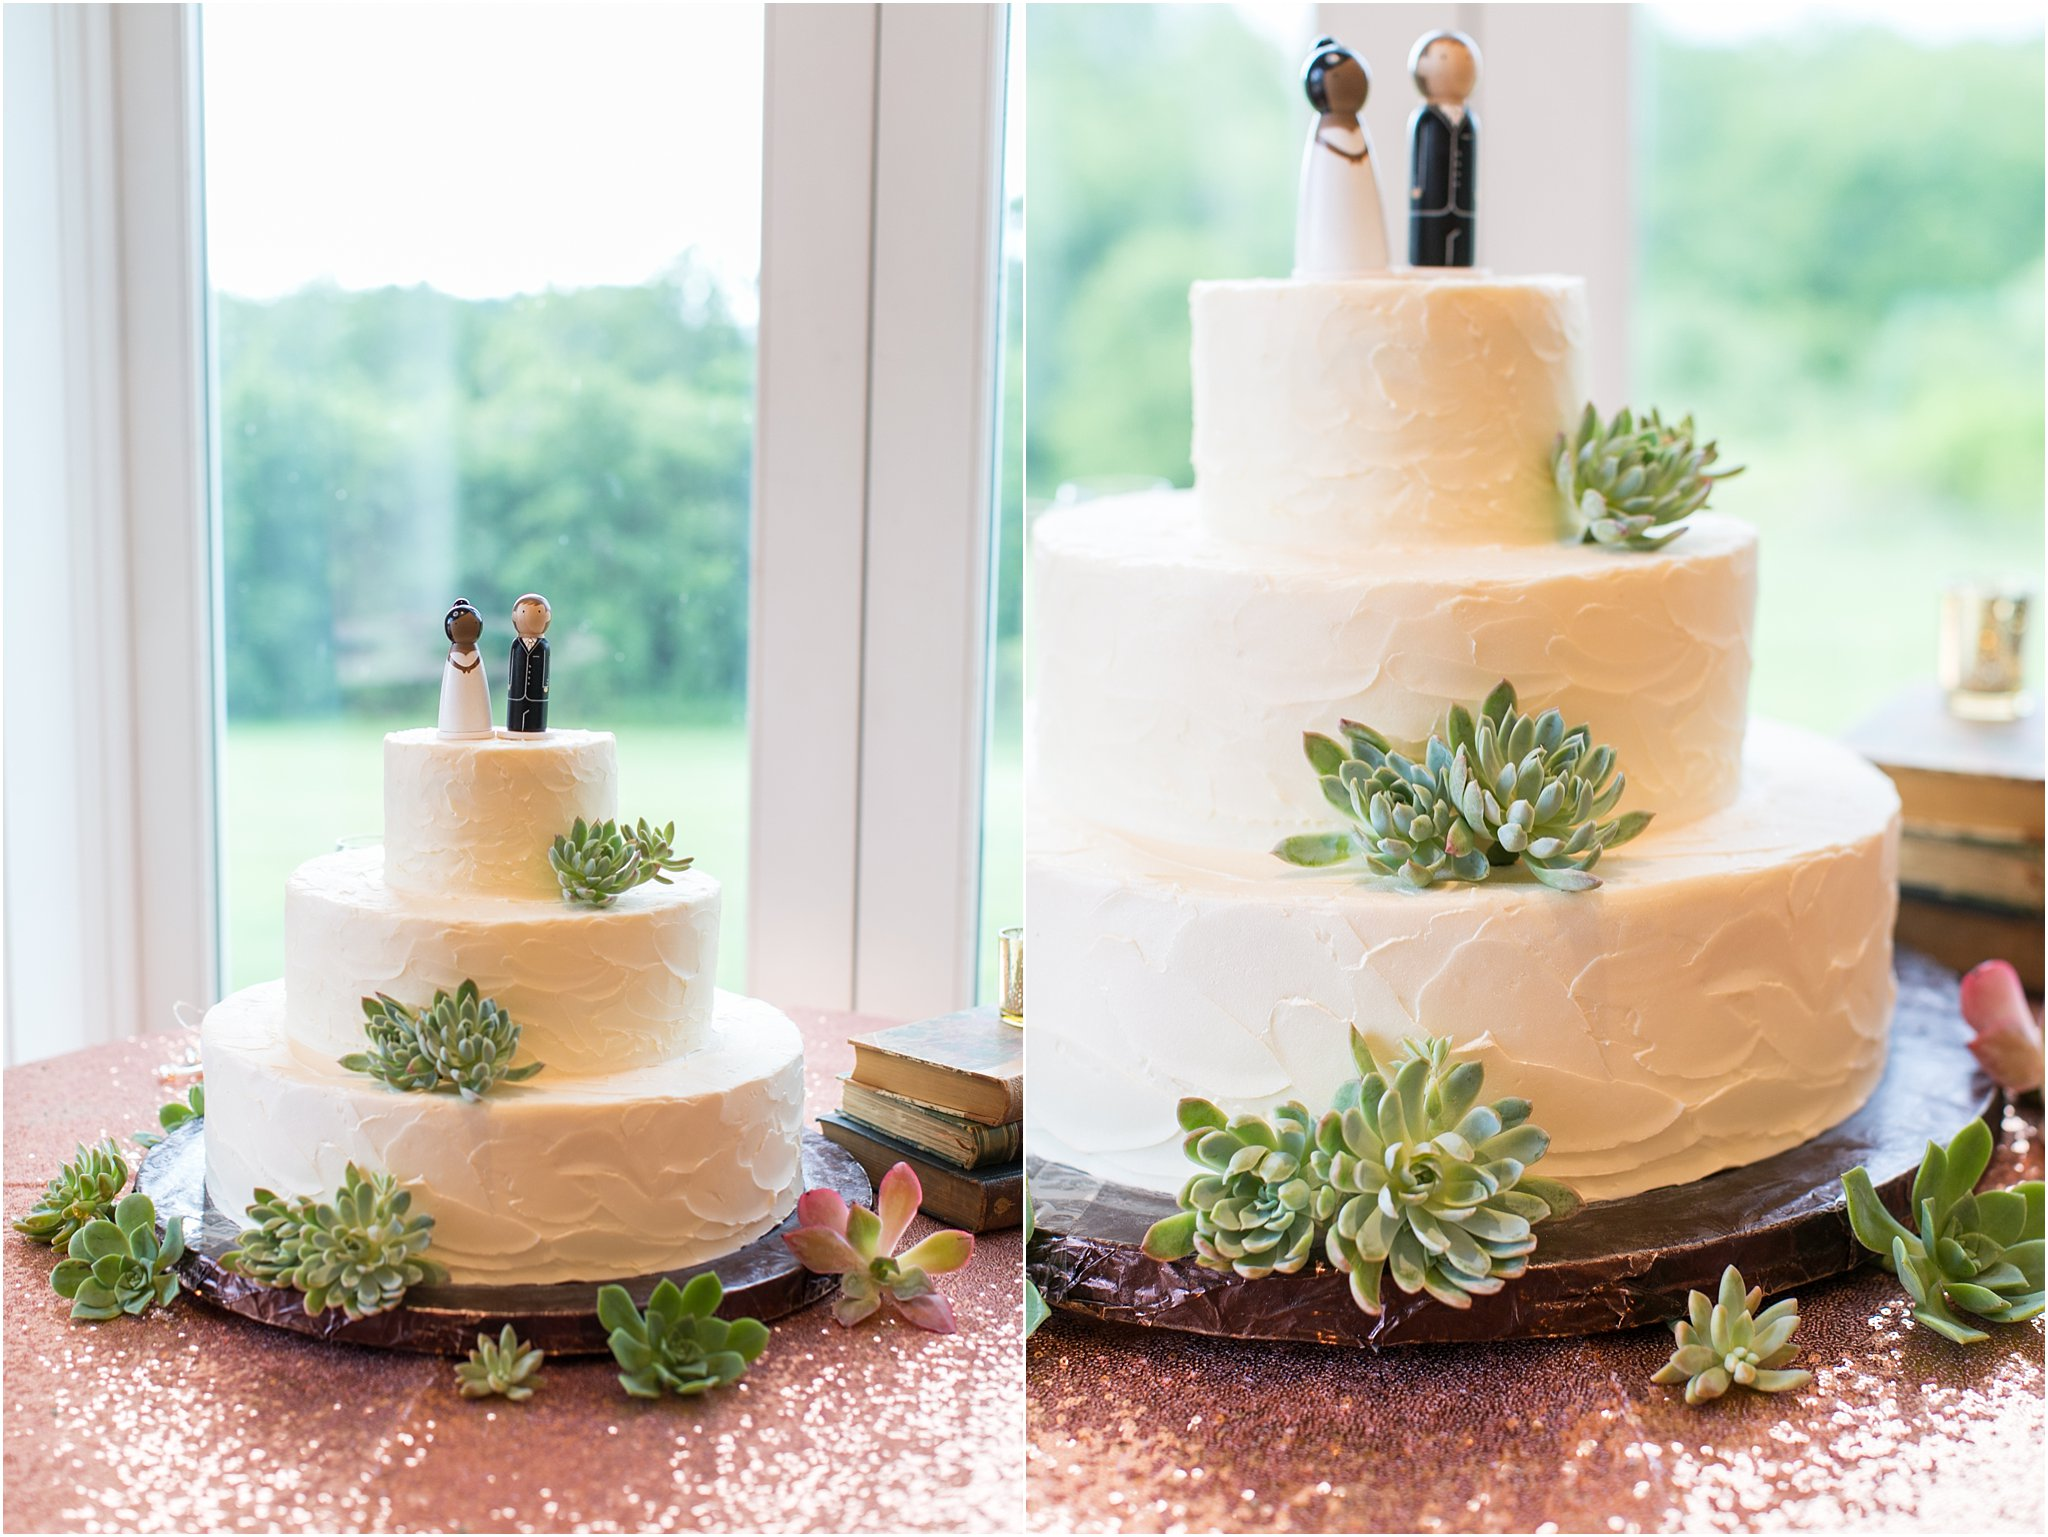 jessica_ryan_photography_virginia__middleburg_briar_patch_bed_and_breakfast_mountainside_wedding_Virginia_wedding_photographer_stella_york_wedding_dress_wedding_2597